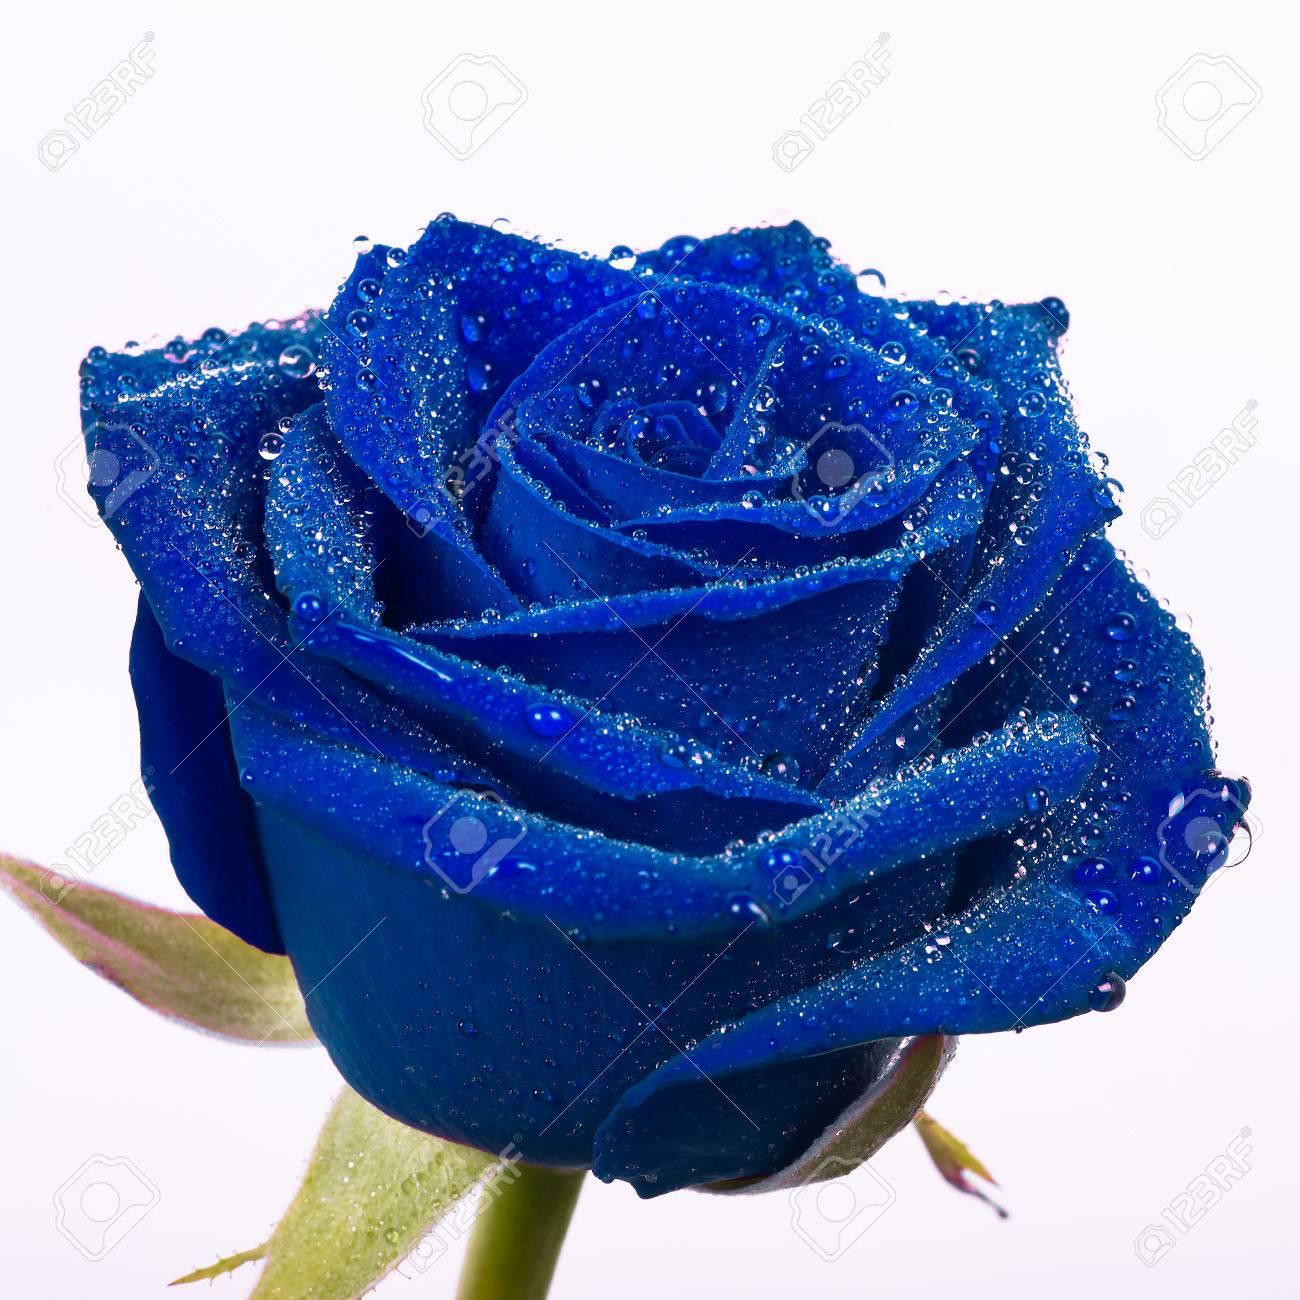 Blue rose stock photos royalty free business images beautiful blue rose with water drops and a white background buycottarizona